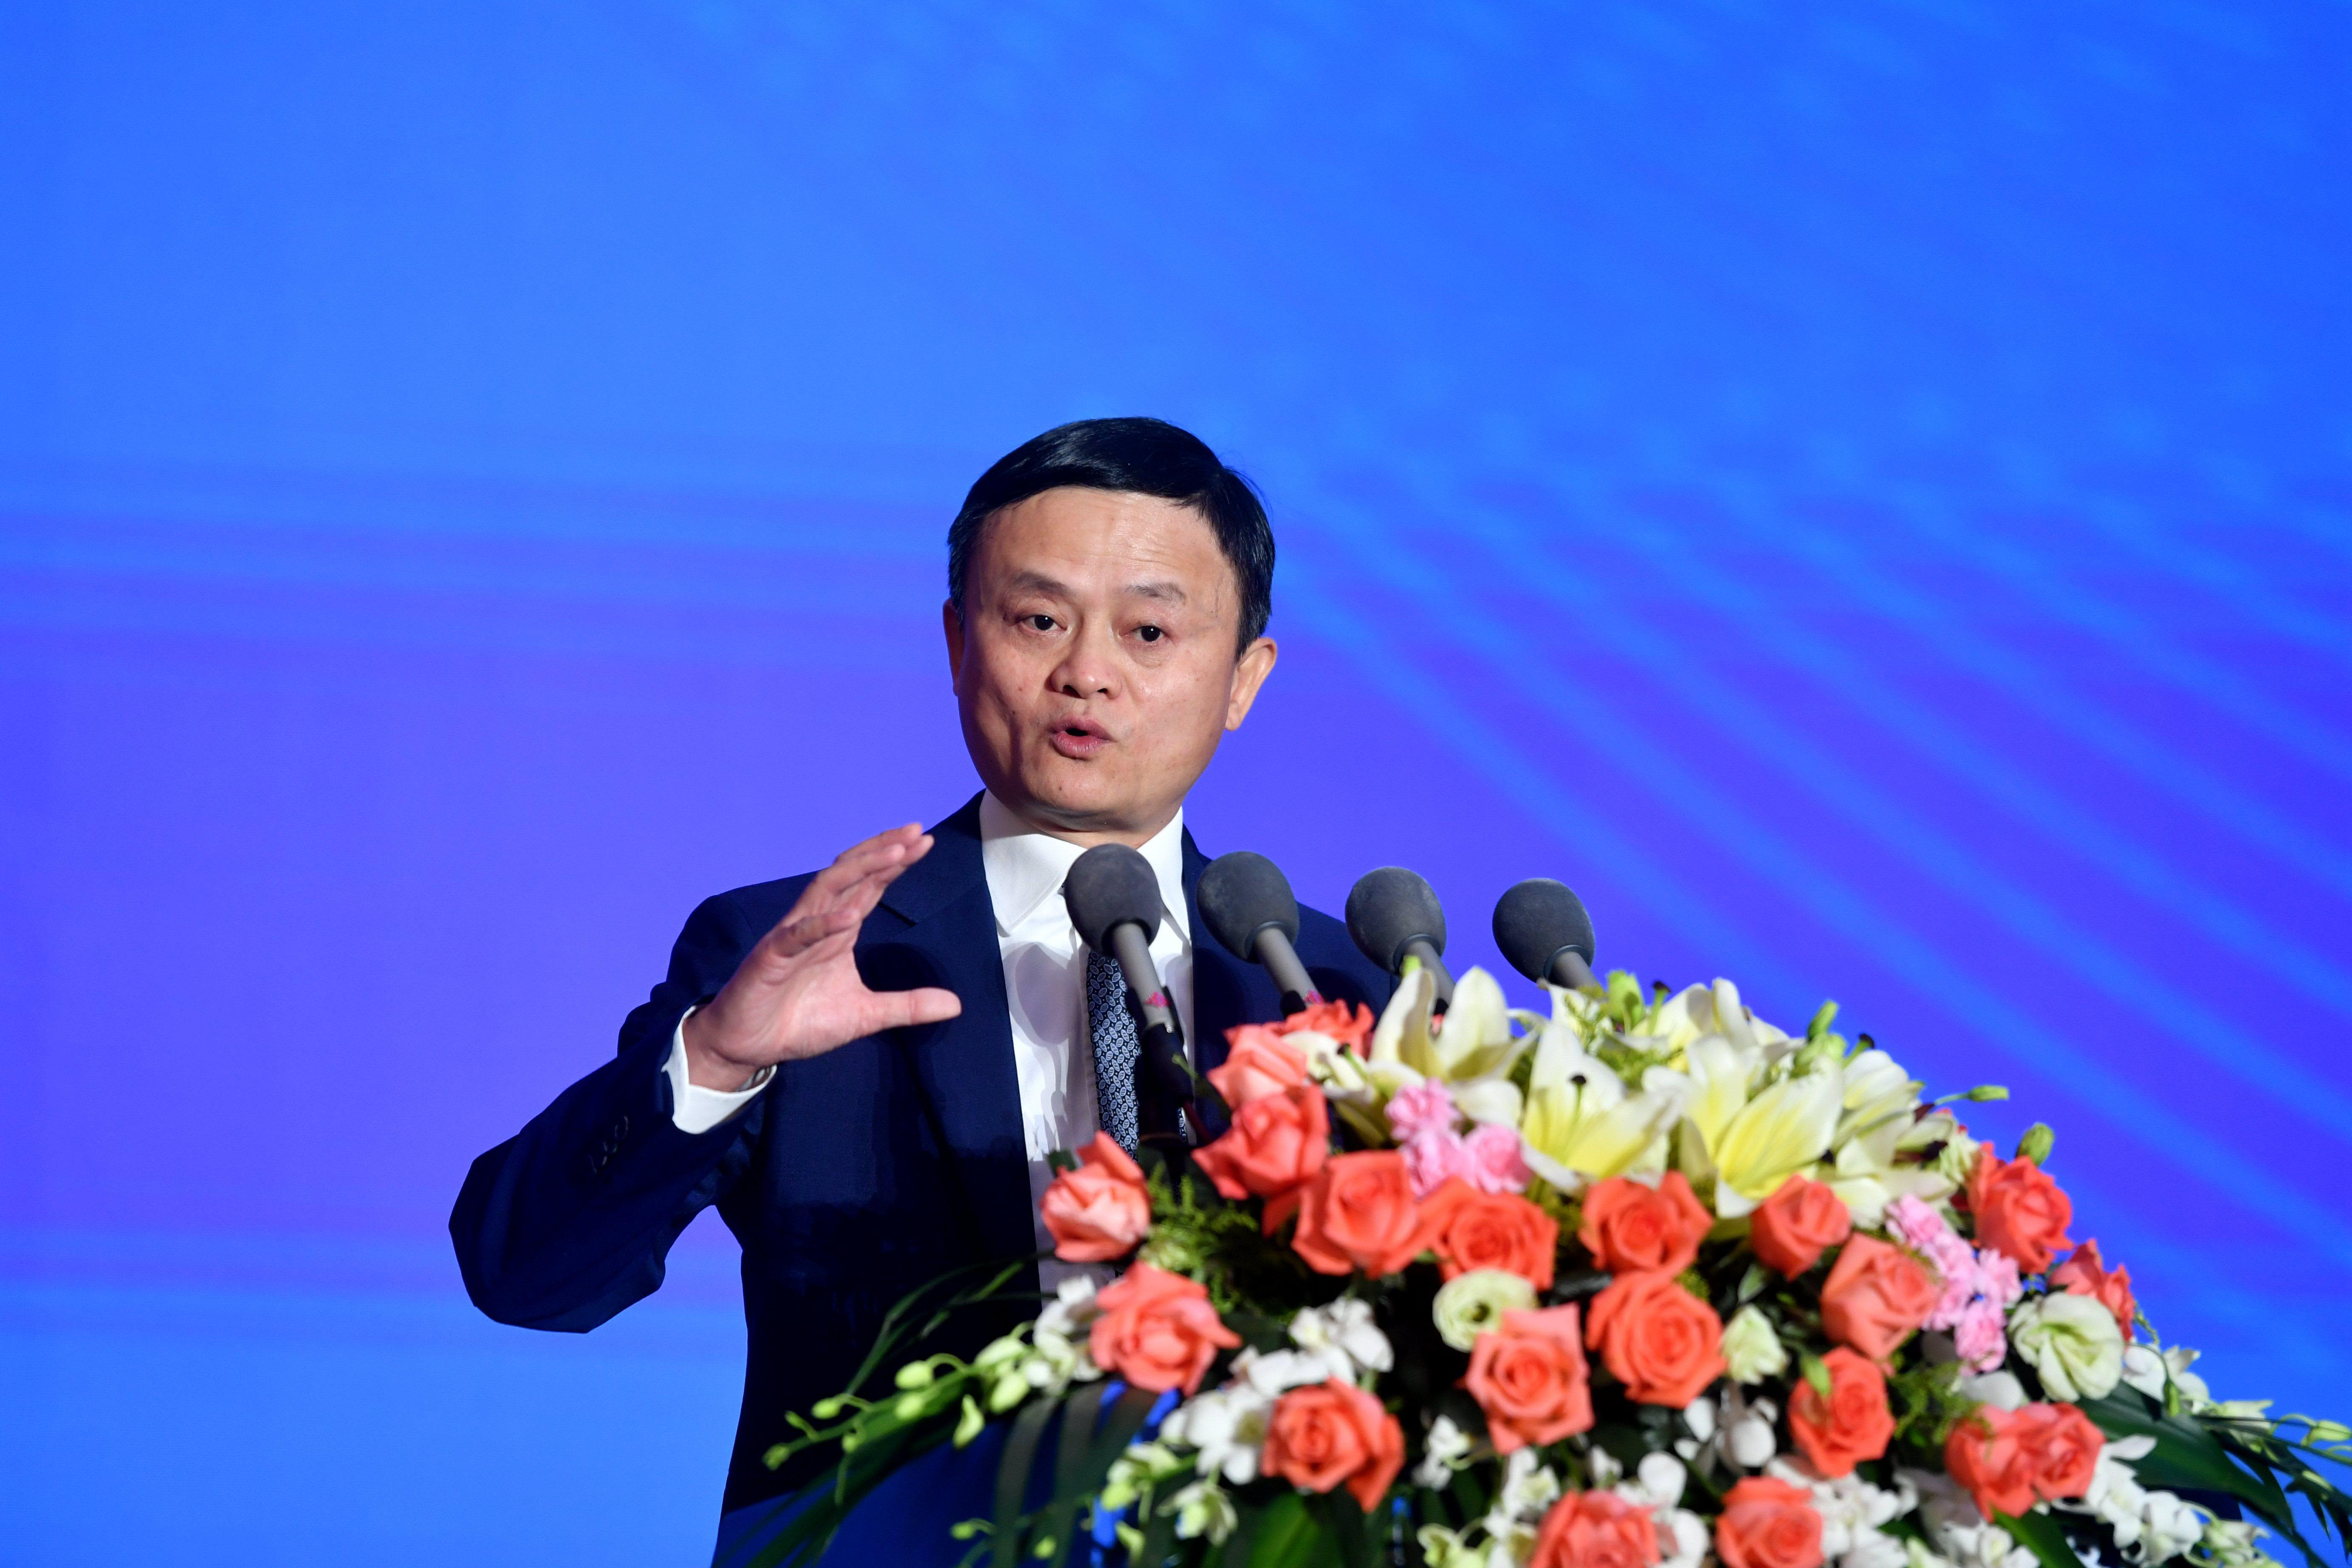 Alibaba founder Jack Ma appears for the first time since crackdown on his tech empire